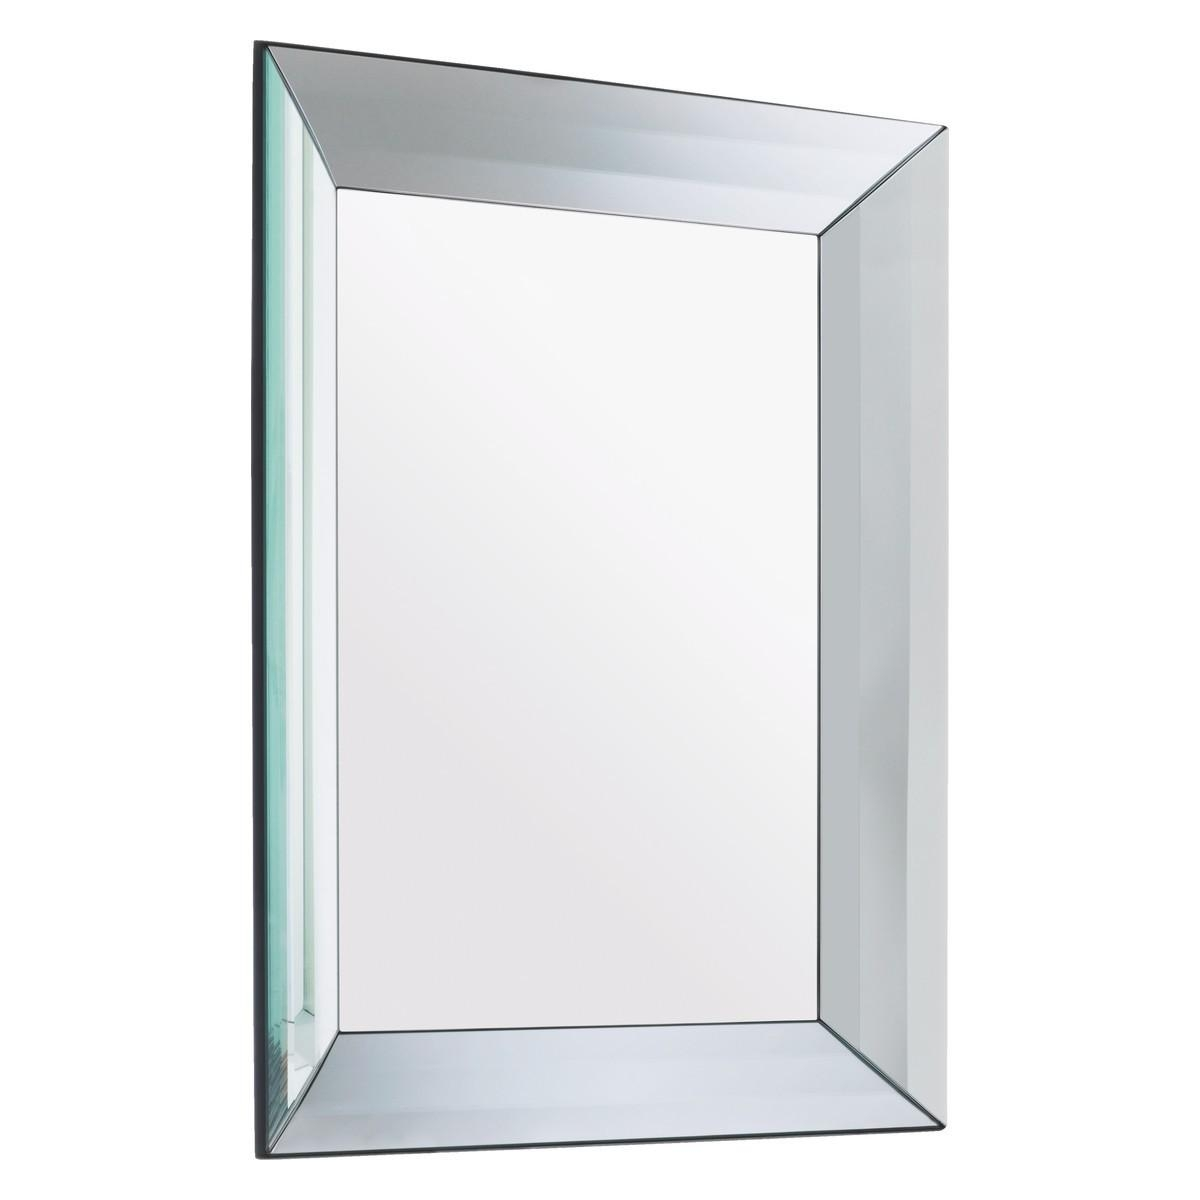 Luella 60 X 80Cm Rectangular Bevelled Wall Mirror | Buy Now At For Bevelled Mirror (View 2 of 20)